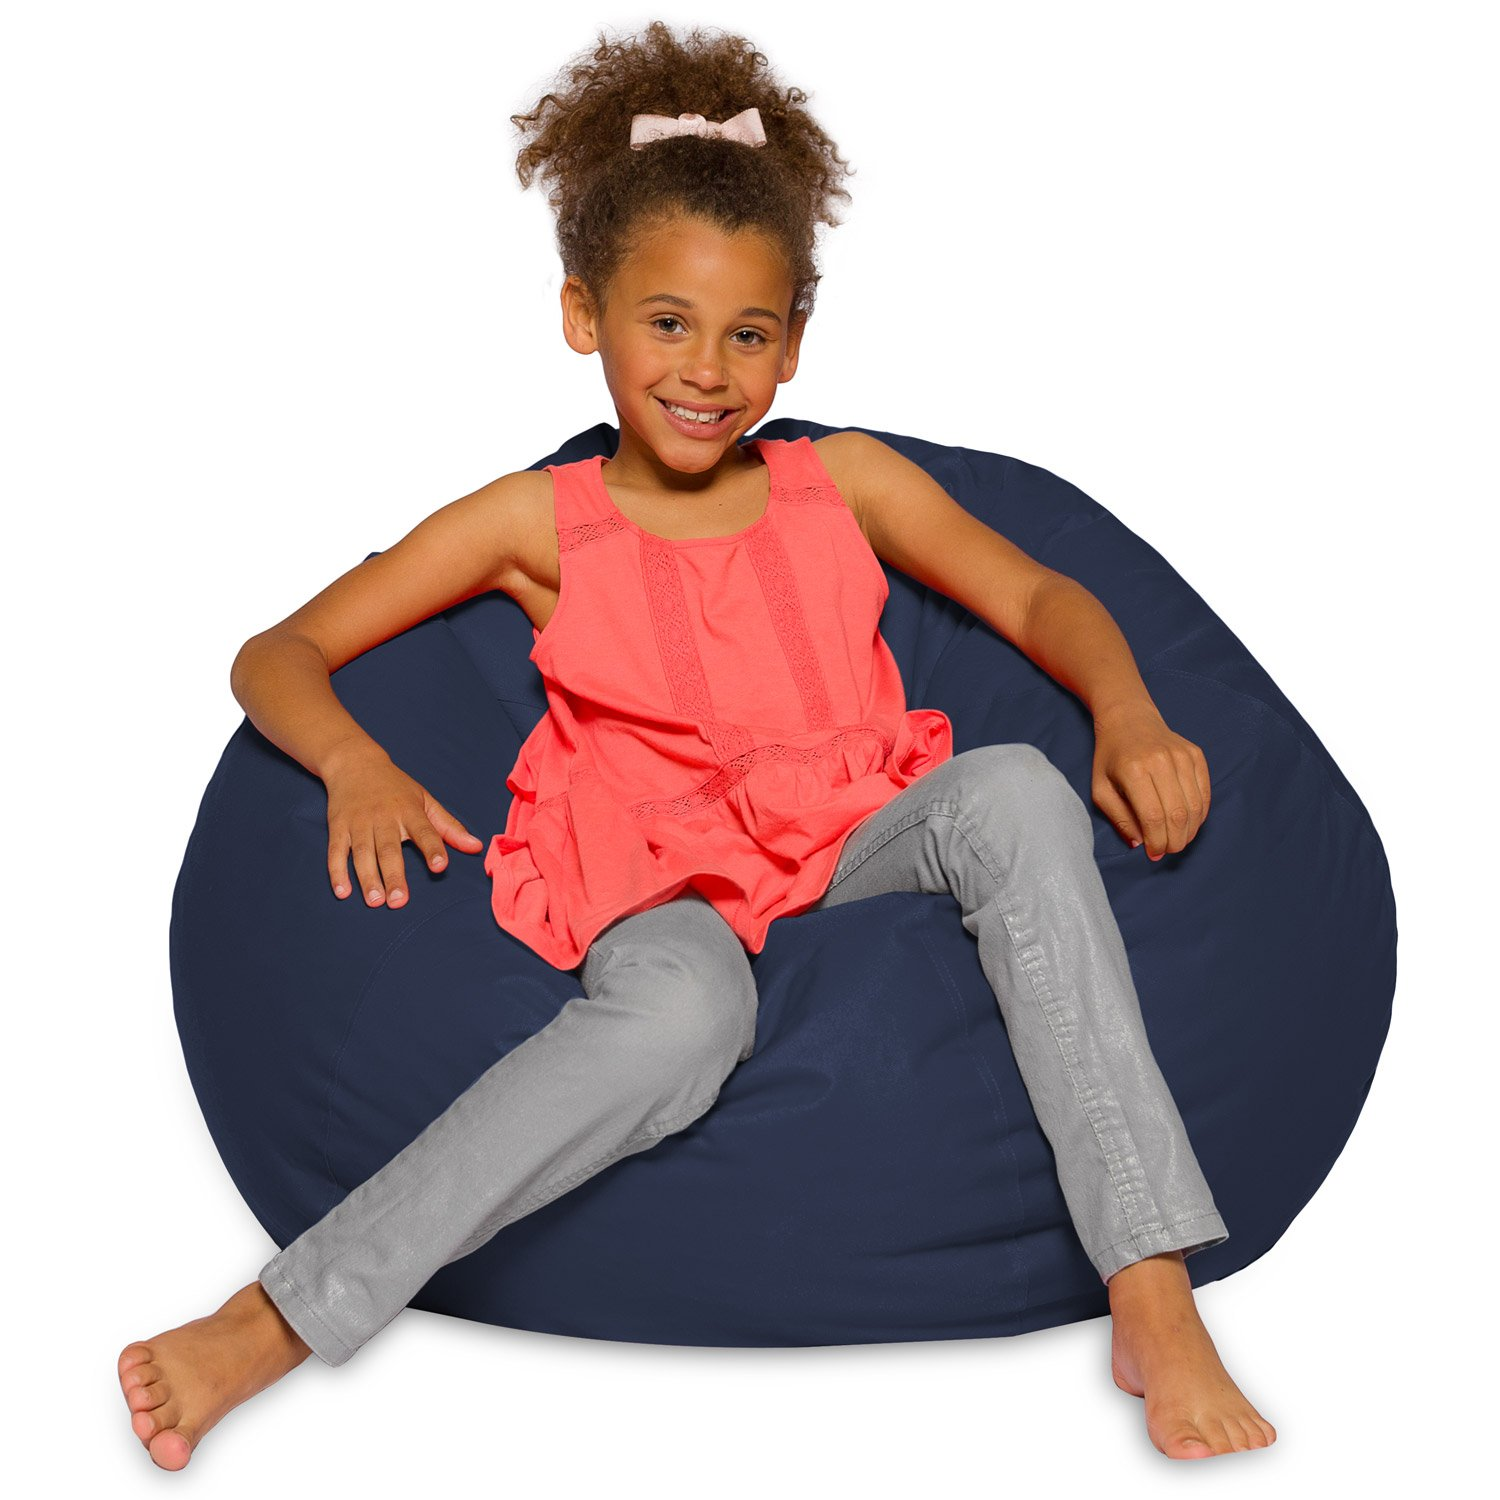 Big Comfy Bean Bag Chair: Posh Large Beanbag Chairs with Removable Cover for Kids, Teens and Adults - Polyester Cloth Puff Sack Lounger Furniture for All Ages - 27 Inch - Solid Navy Blue